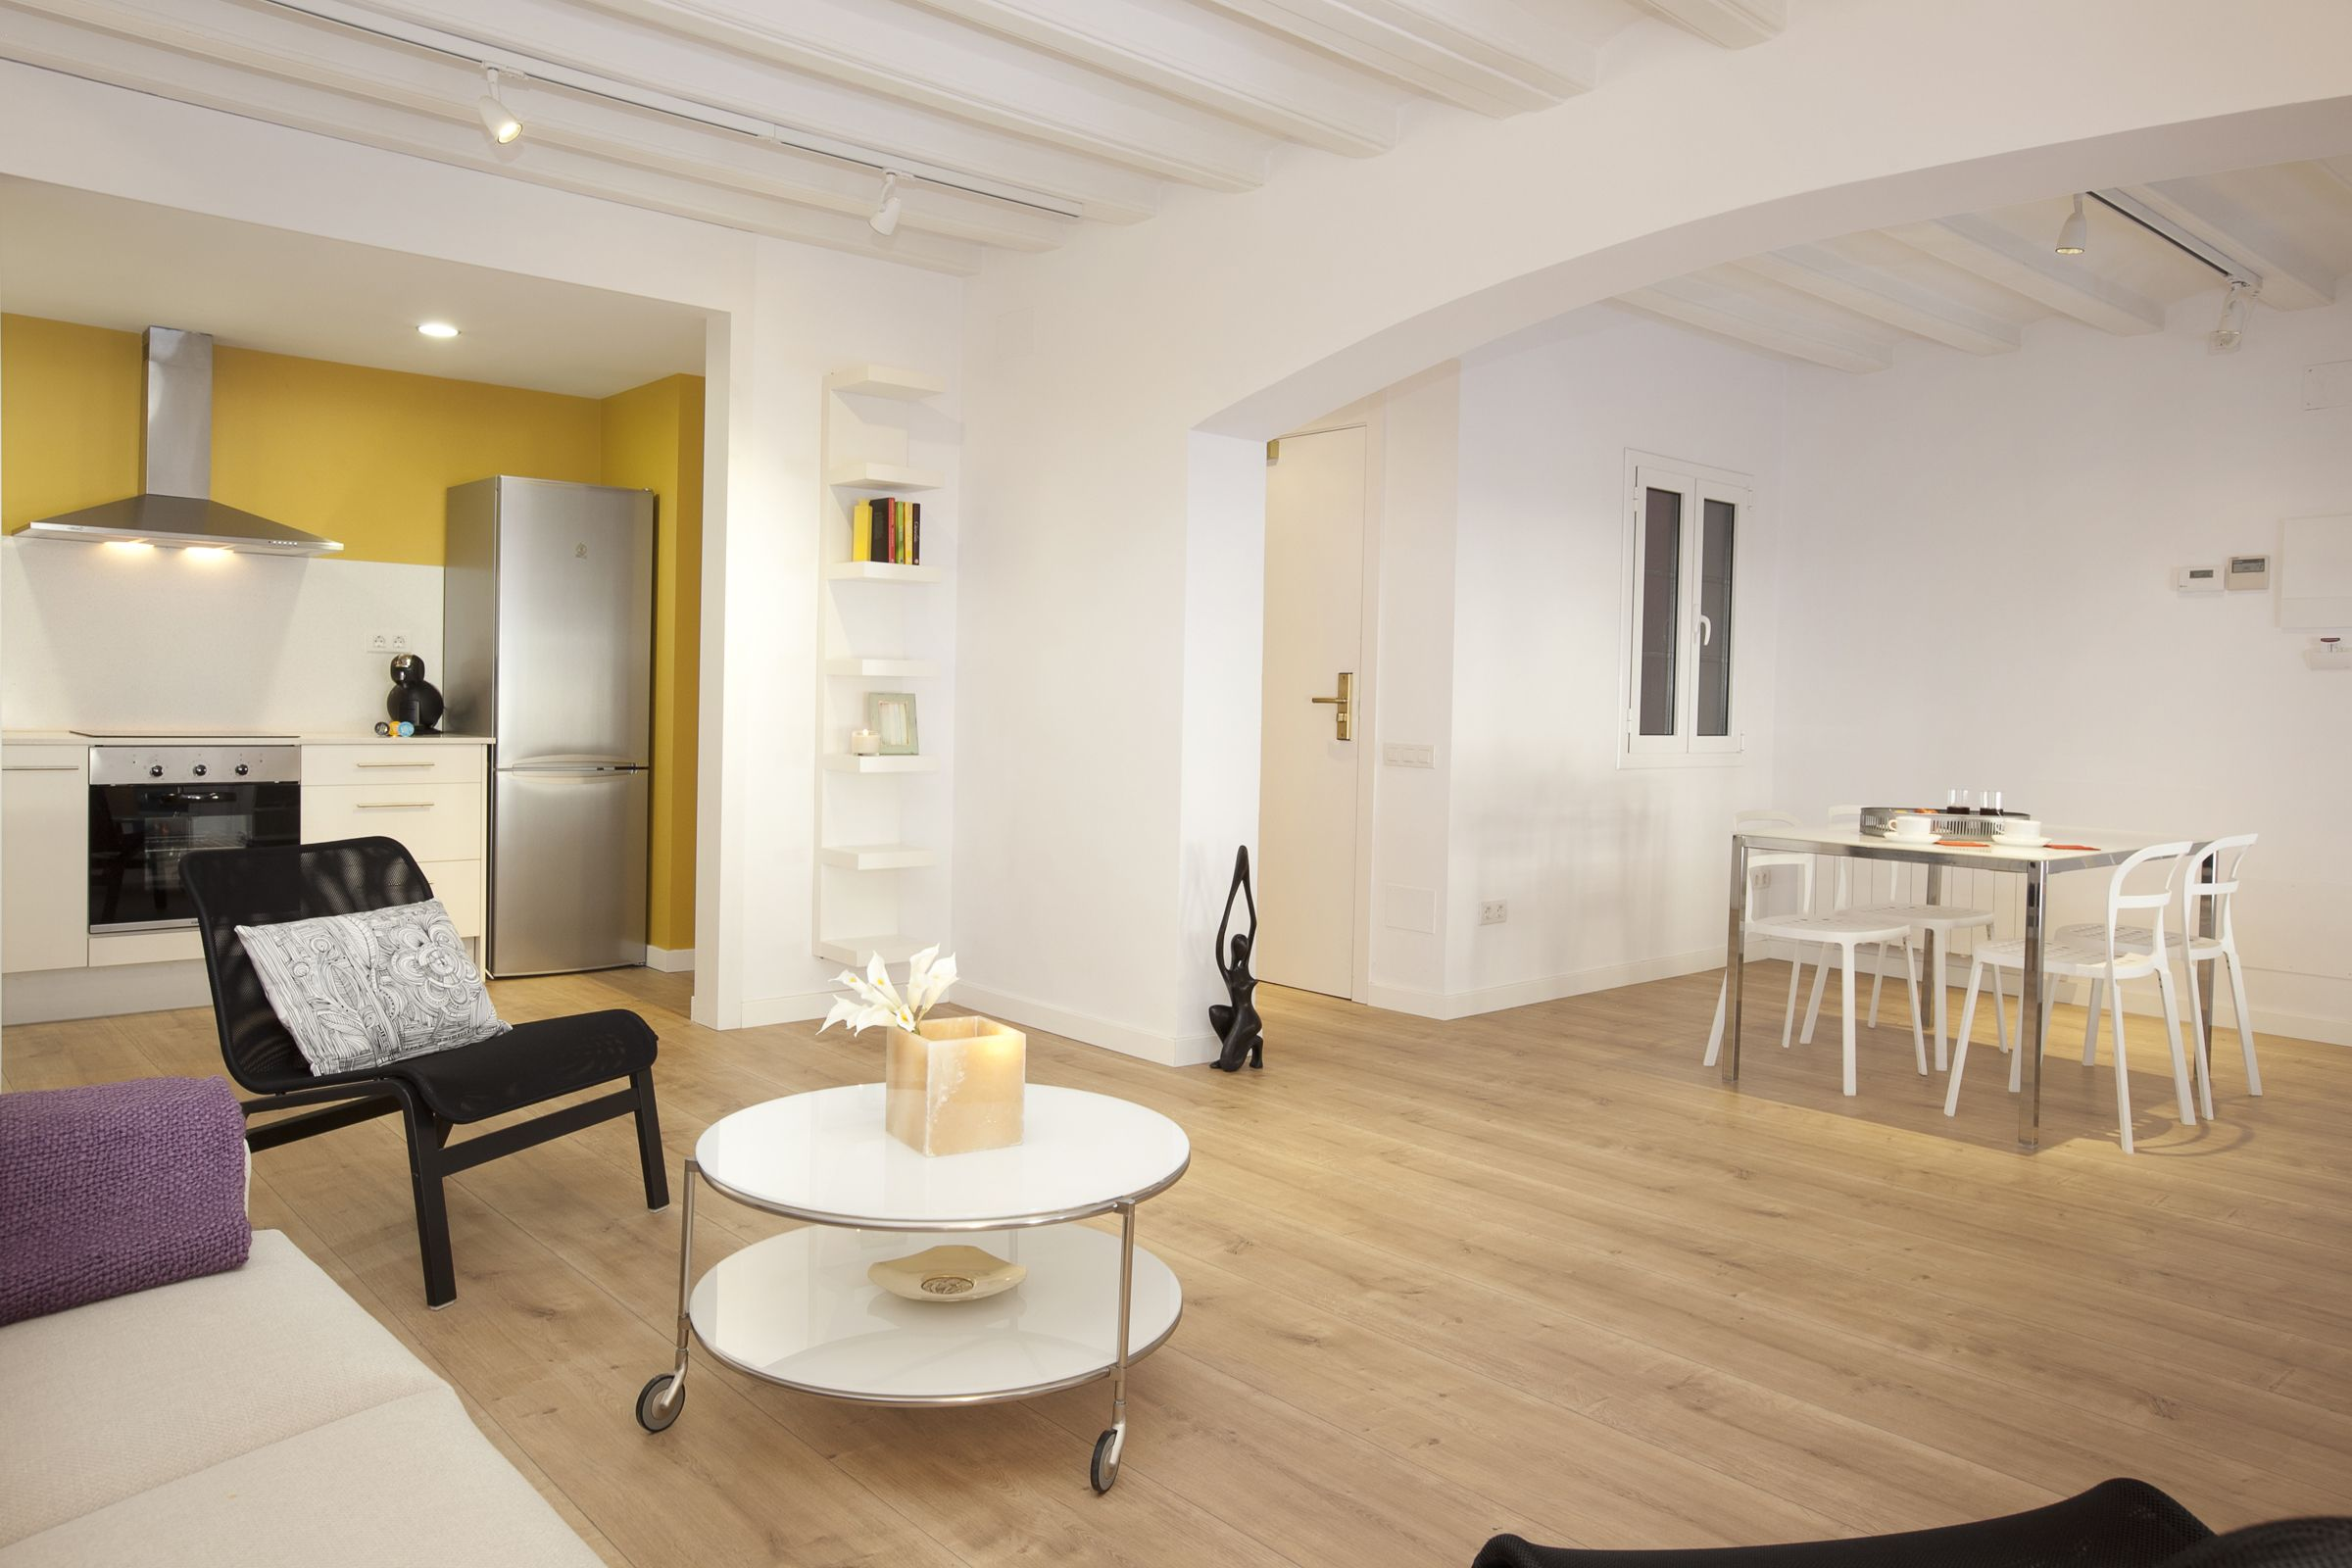 2. Salon Comedor - Living and Dining room | 1840 Apartments